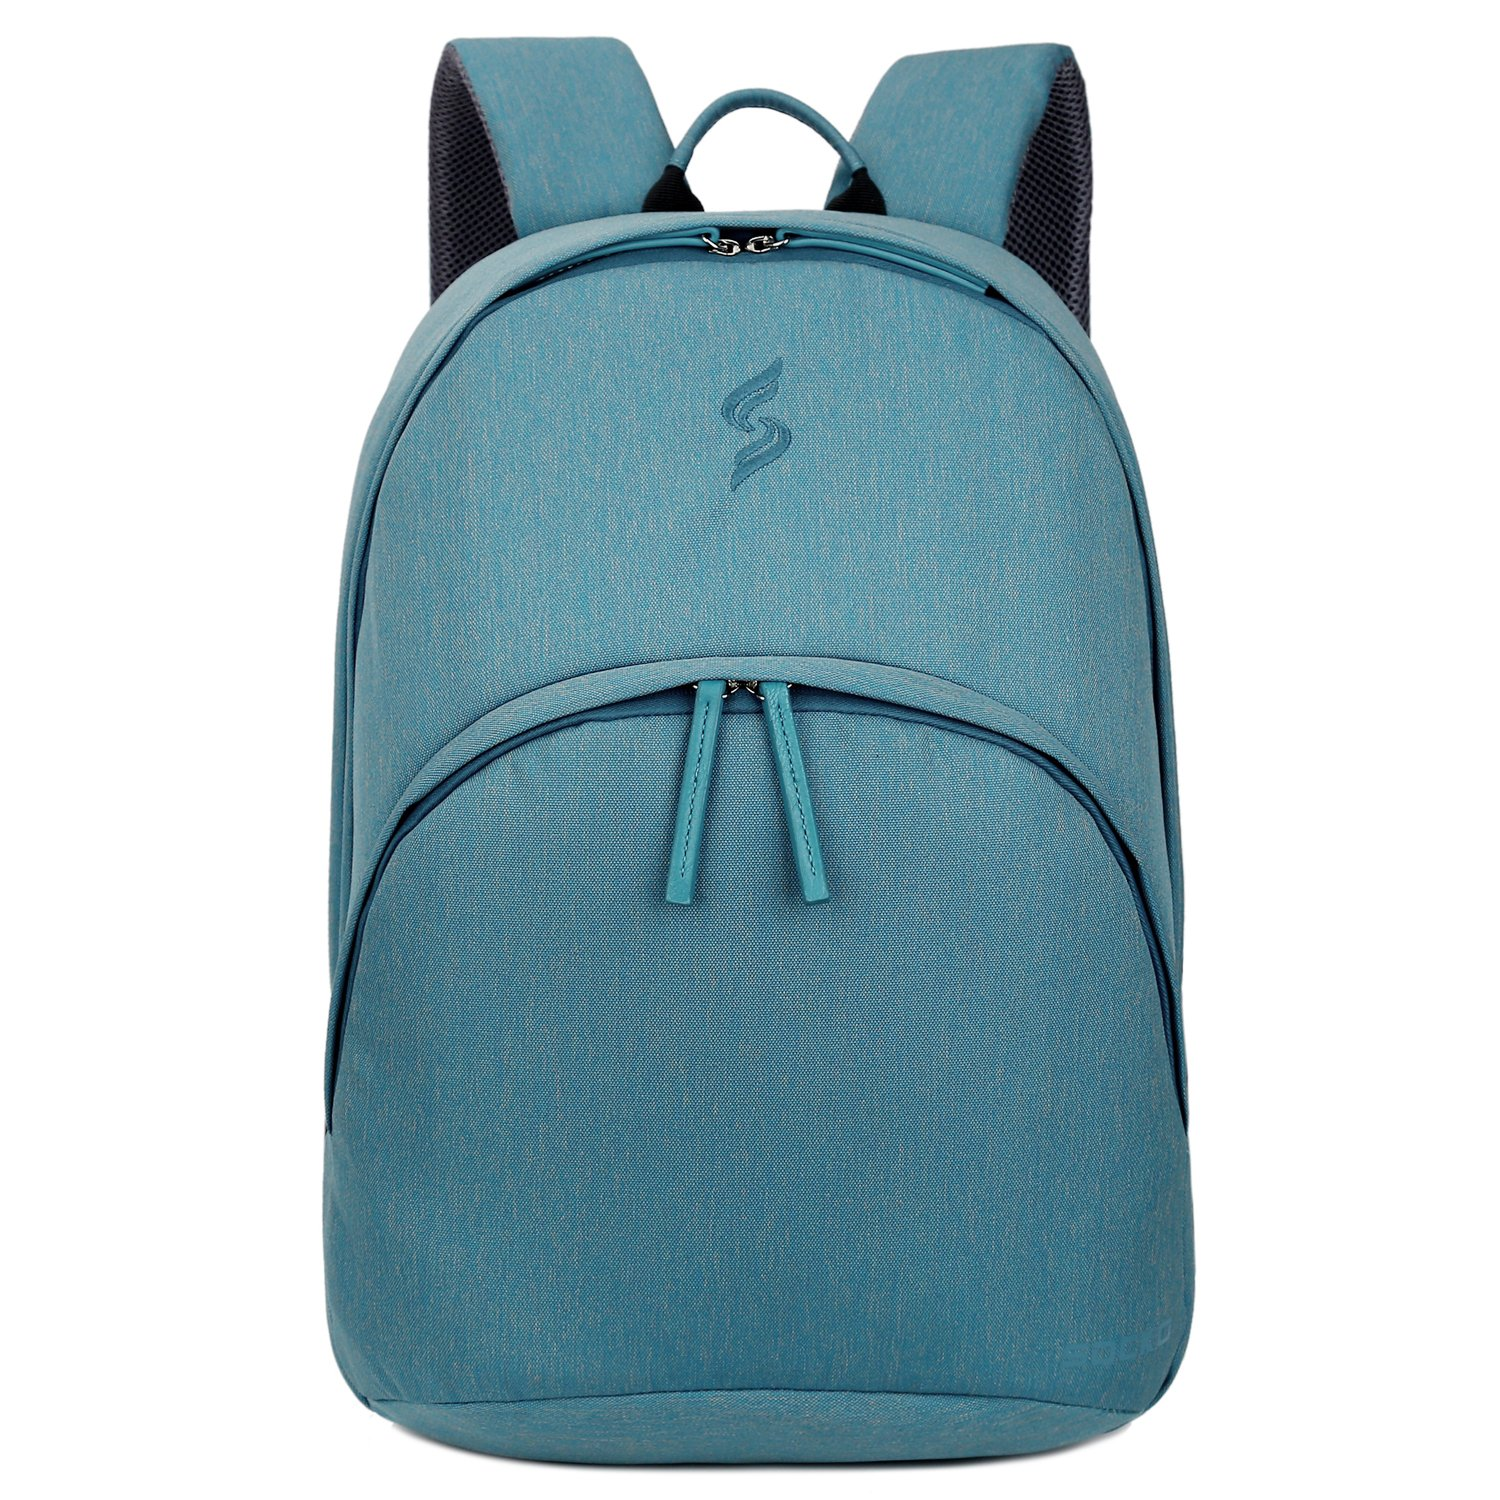 38c7f0f17cdf Laptop Backpack 15.6 Inch